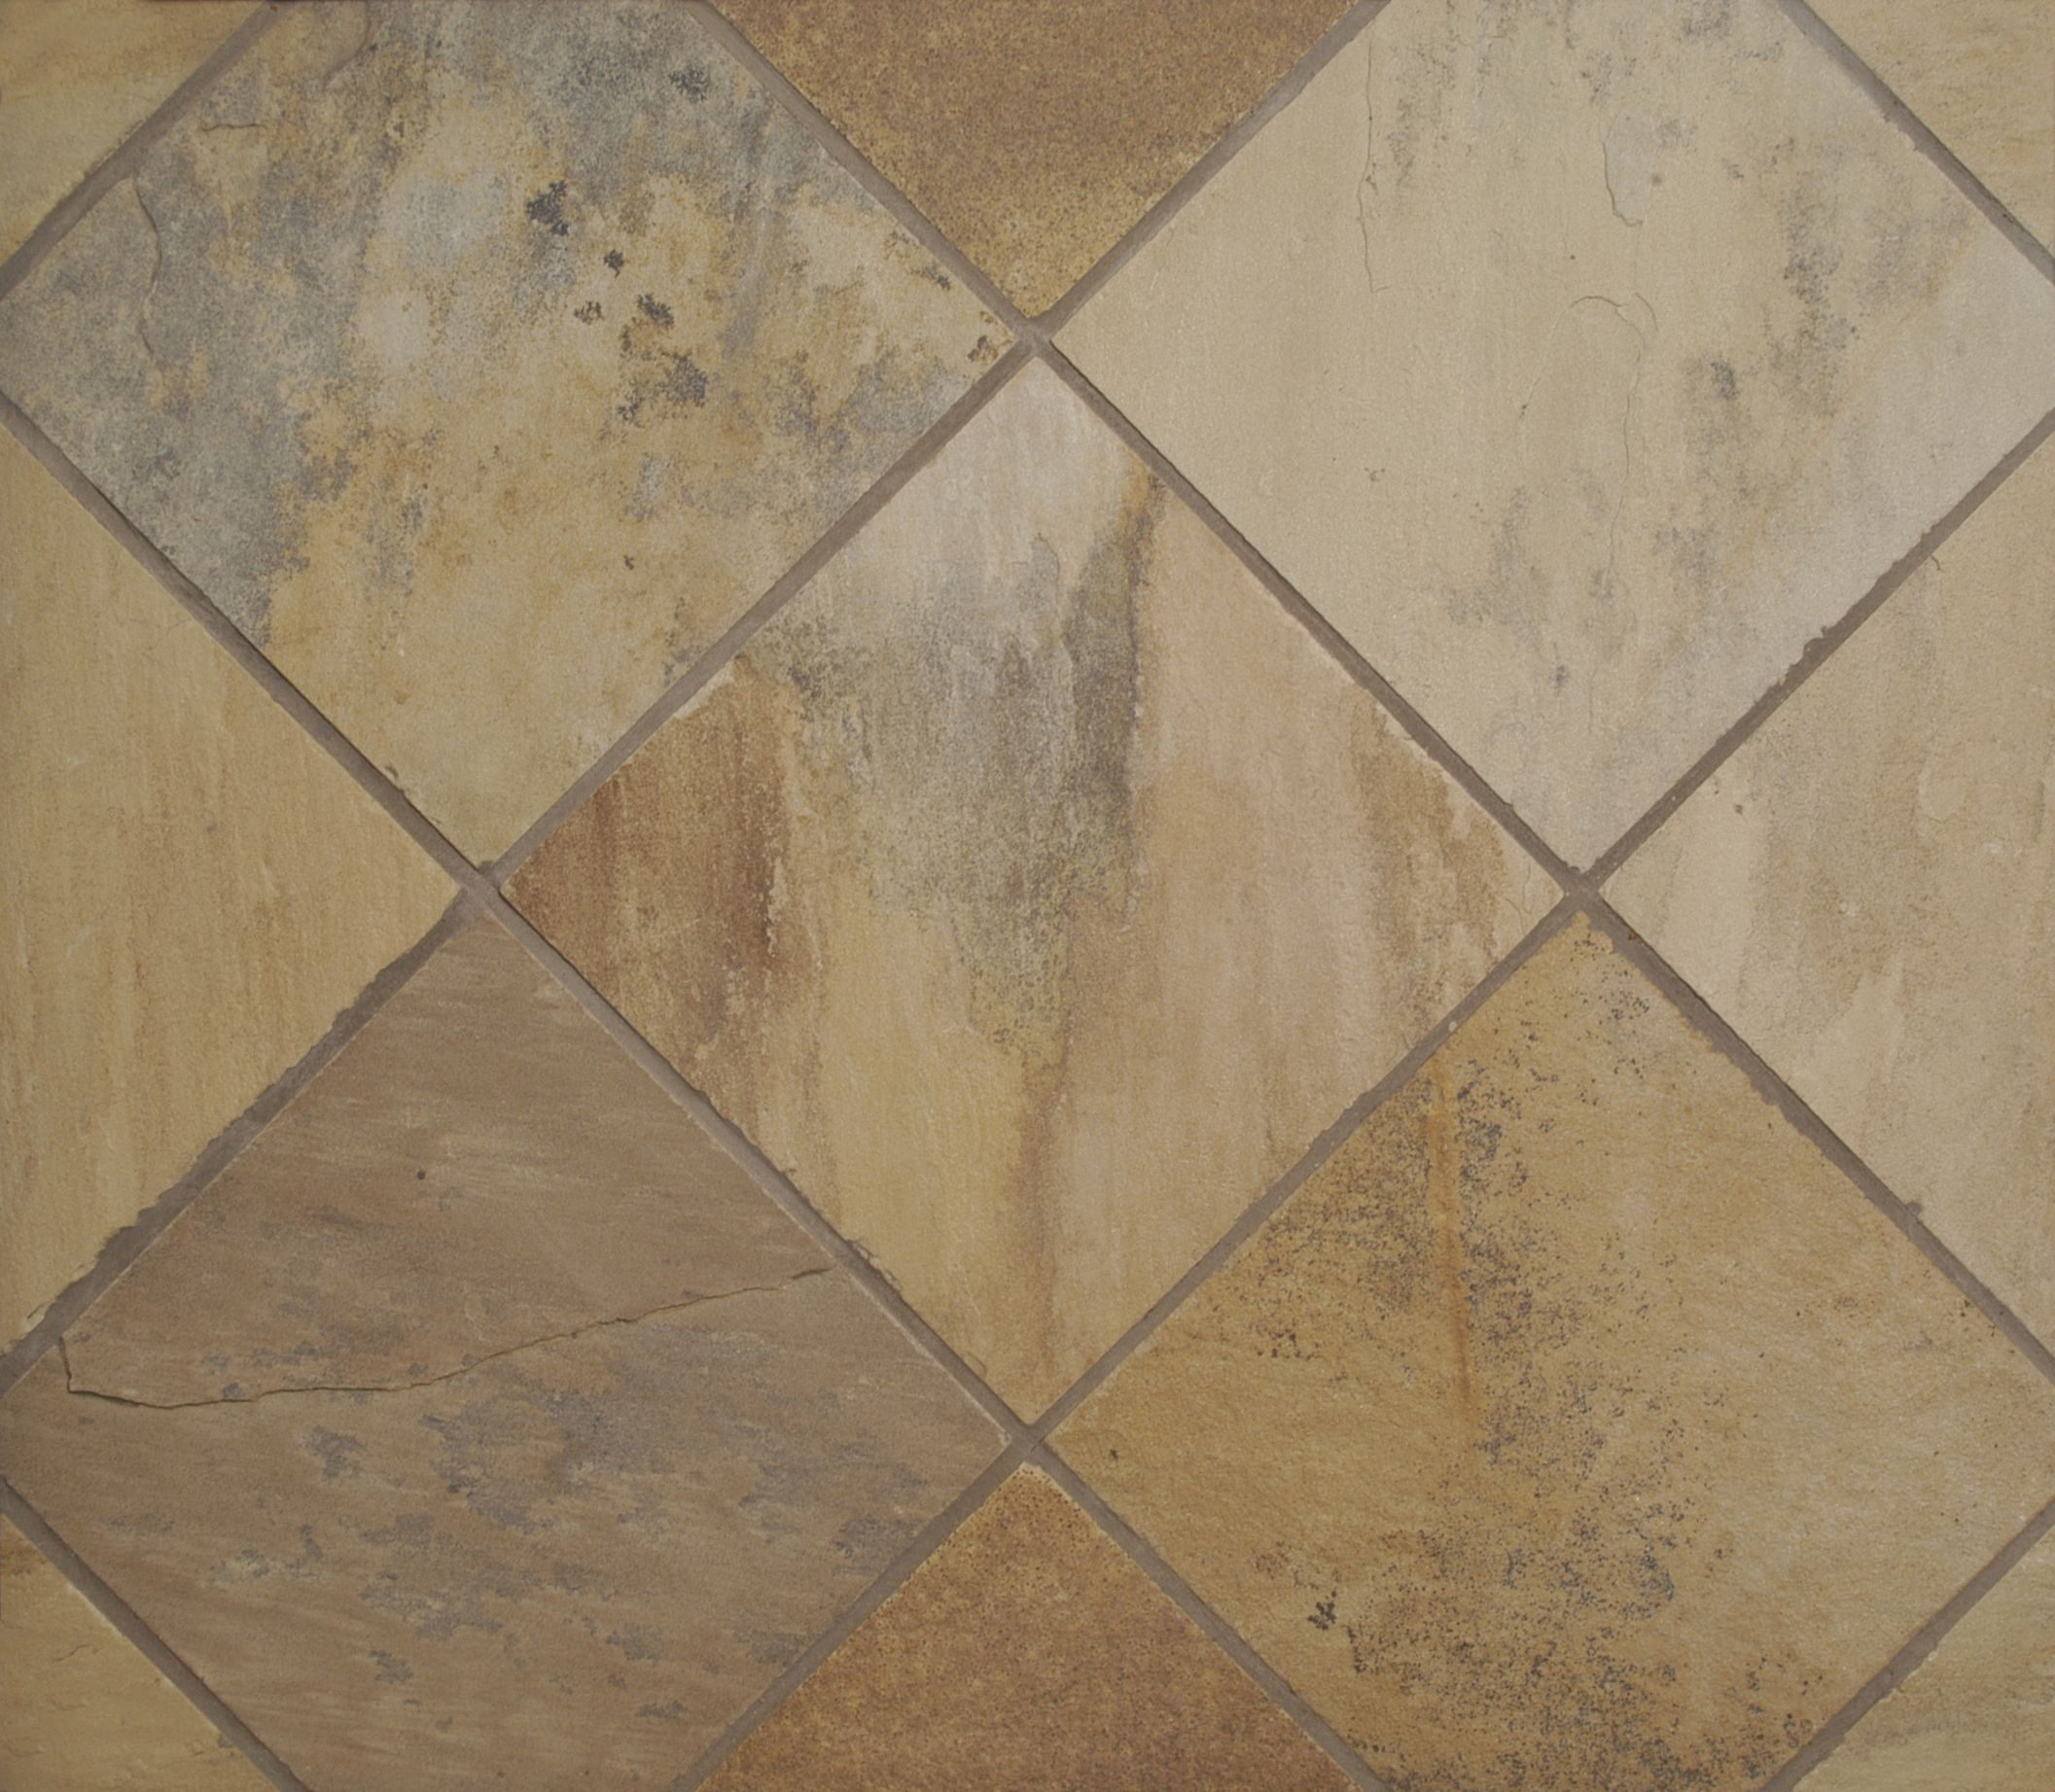 Sandstone country cameo inspirational gallery pinterest himalayan sandstone tiles and sandstone pavers in sydney australia dailygadgetfo Choice Image